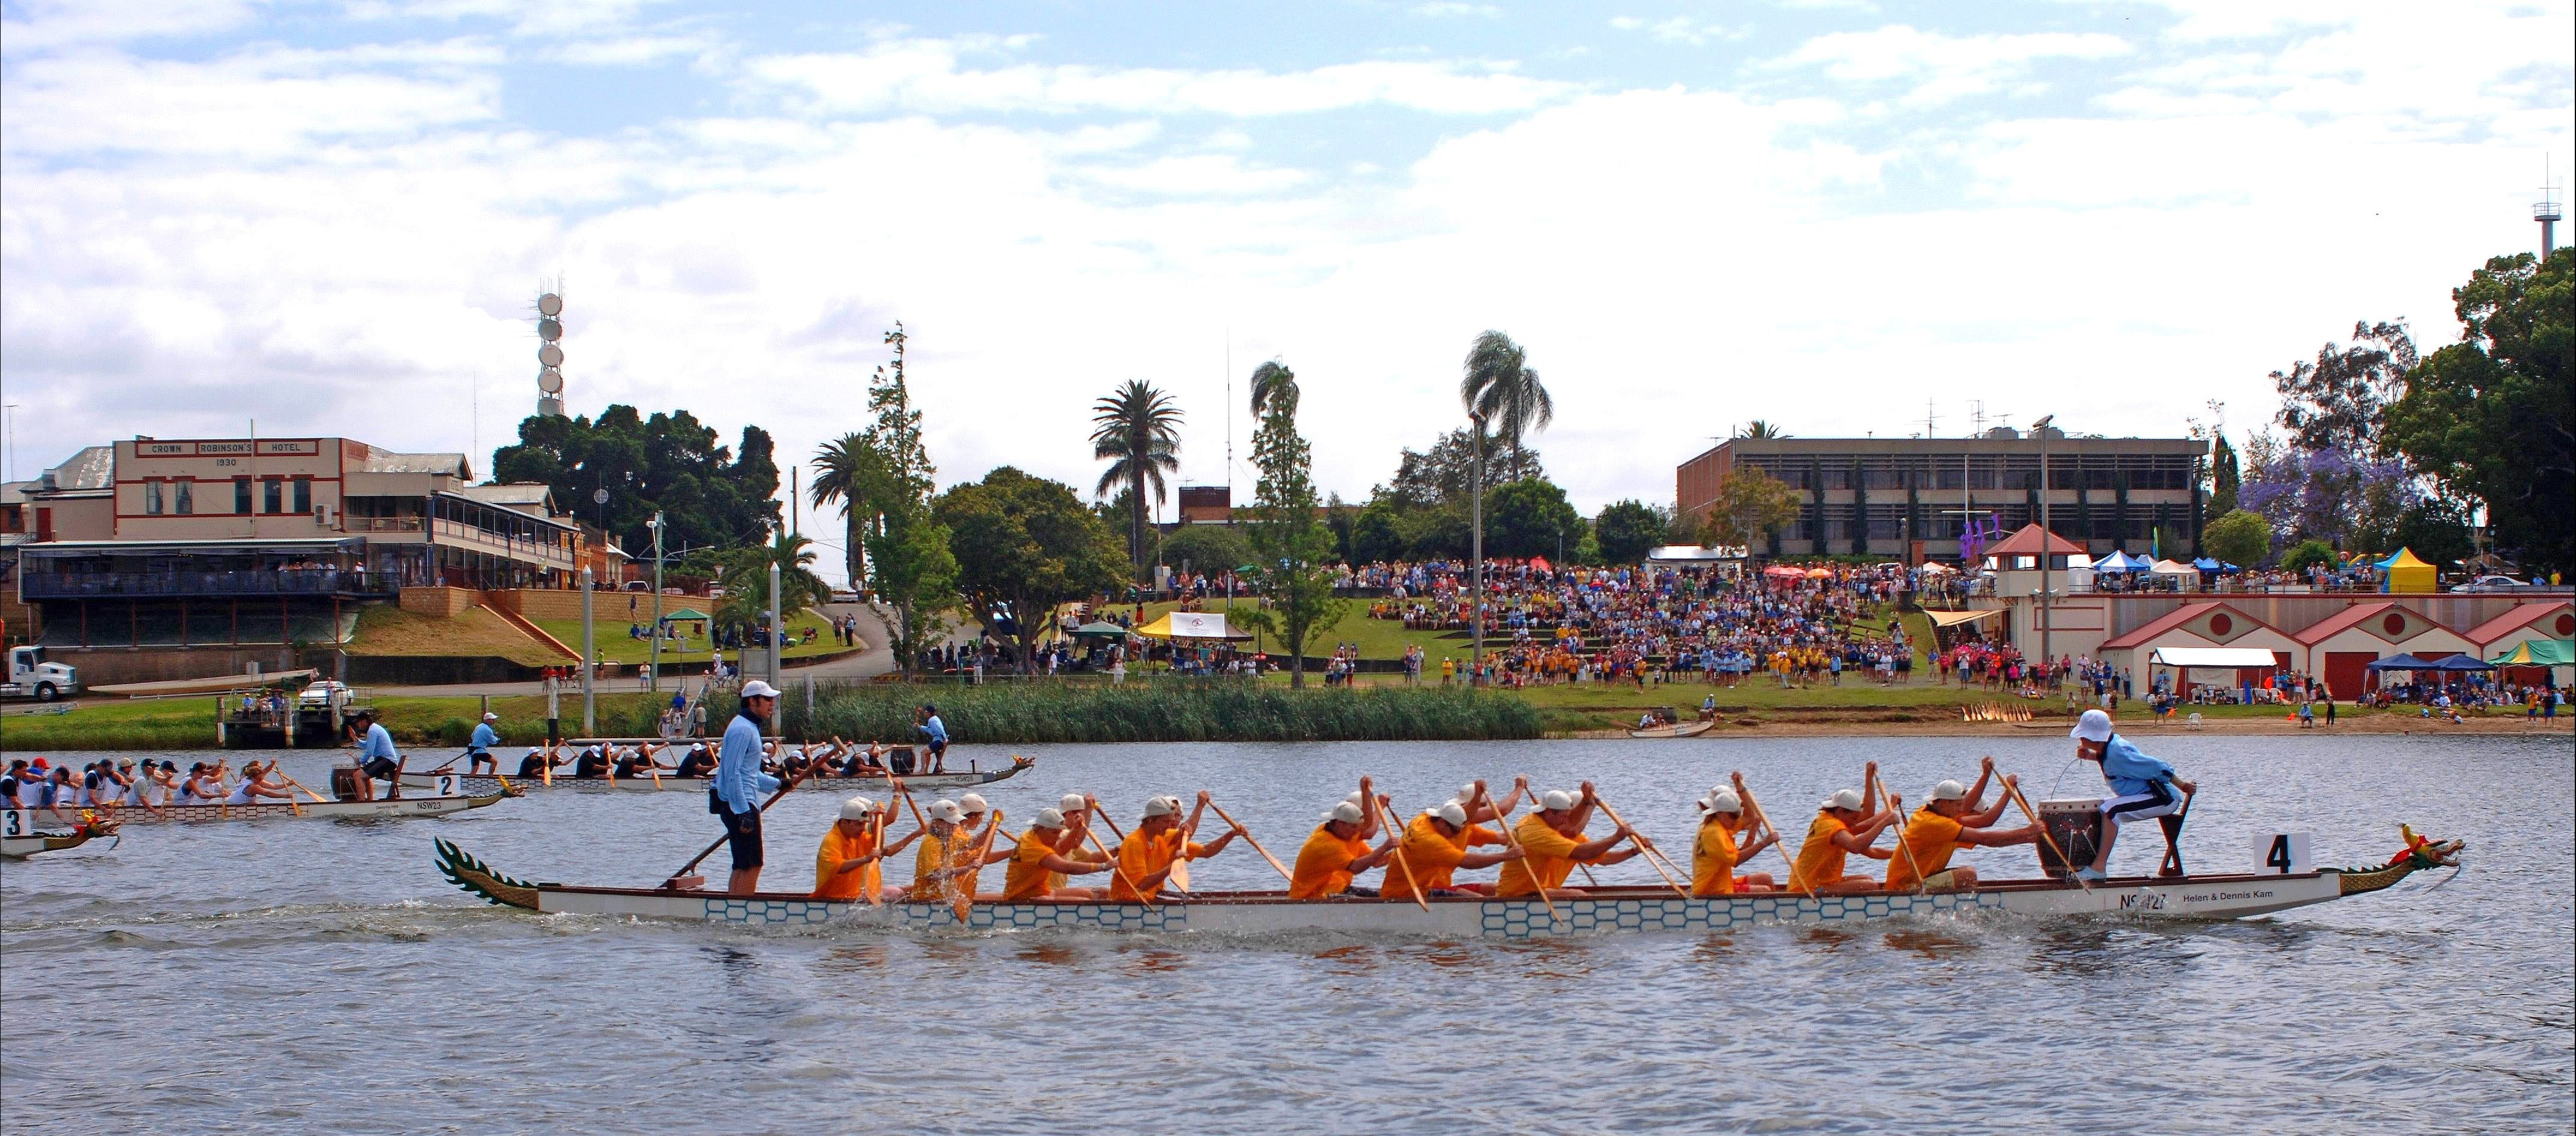 Jacaranda Dragon Boat Races - New South Wales Tourism